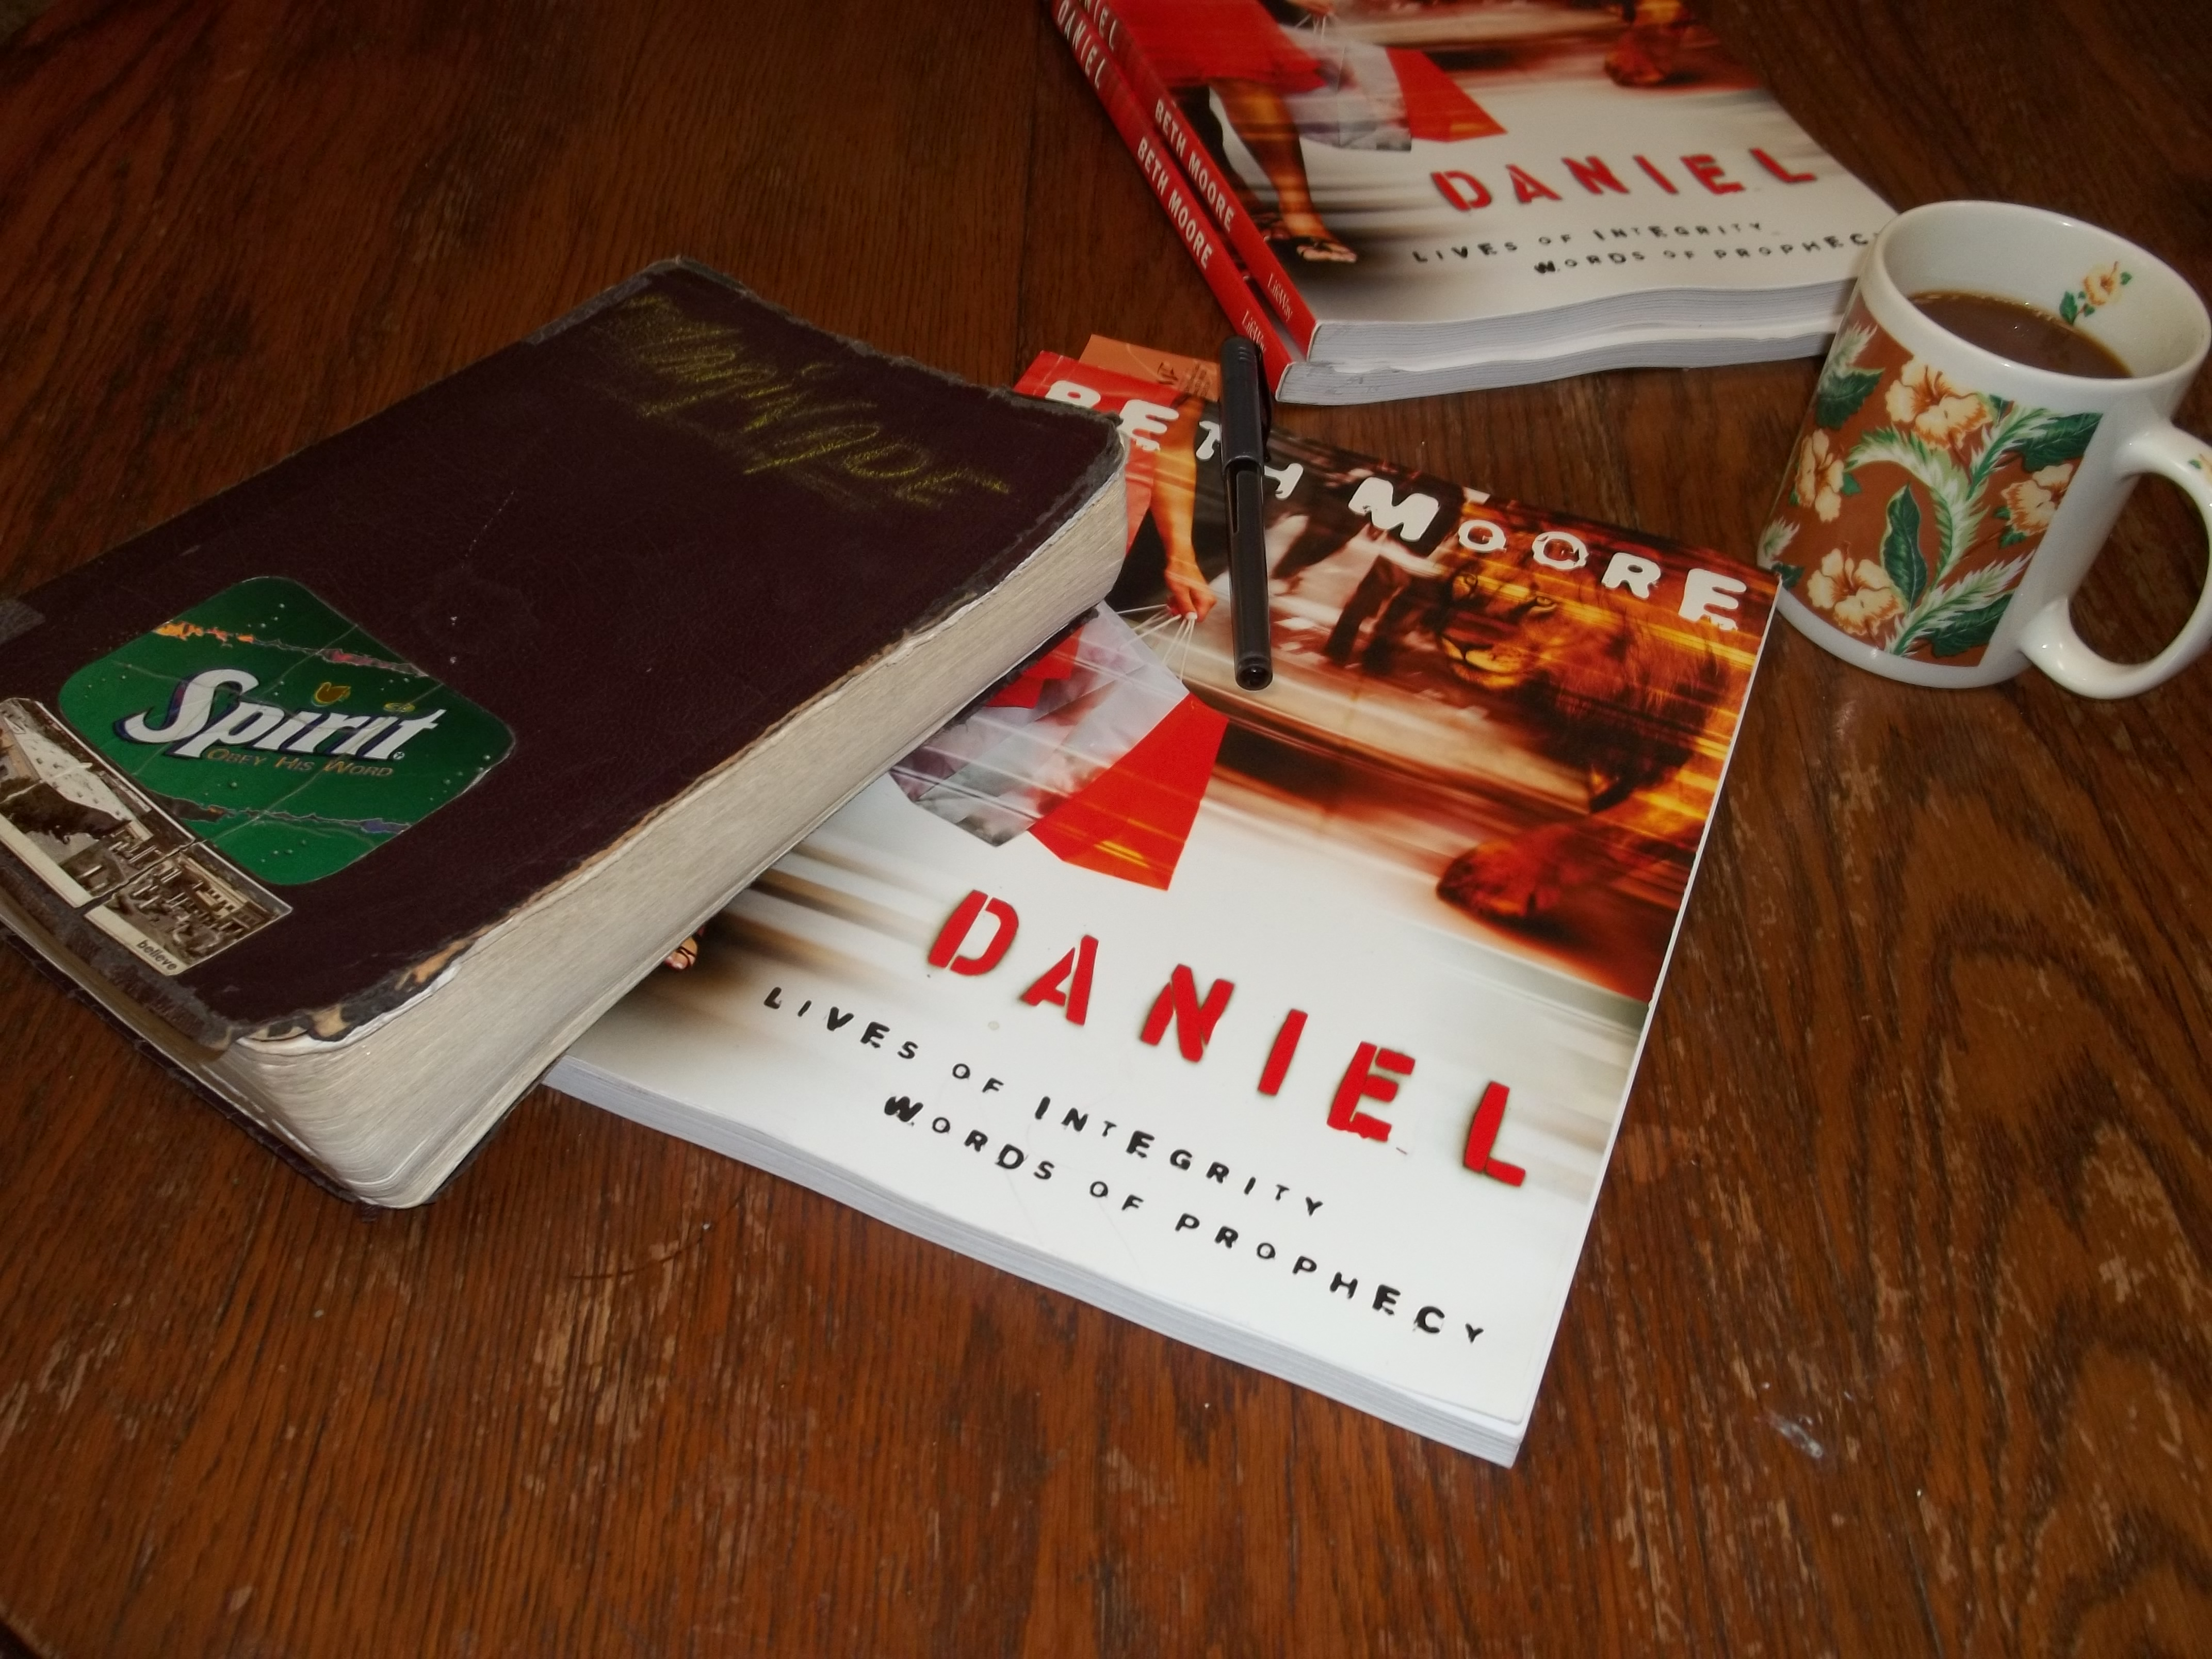 Daniel: Lives of Integrity Words of Prophecy, Member Book ...